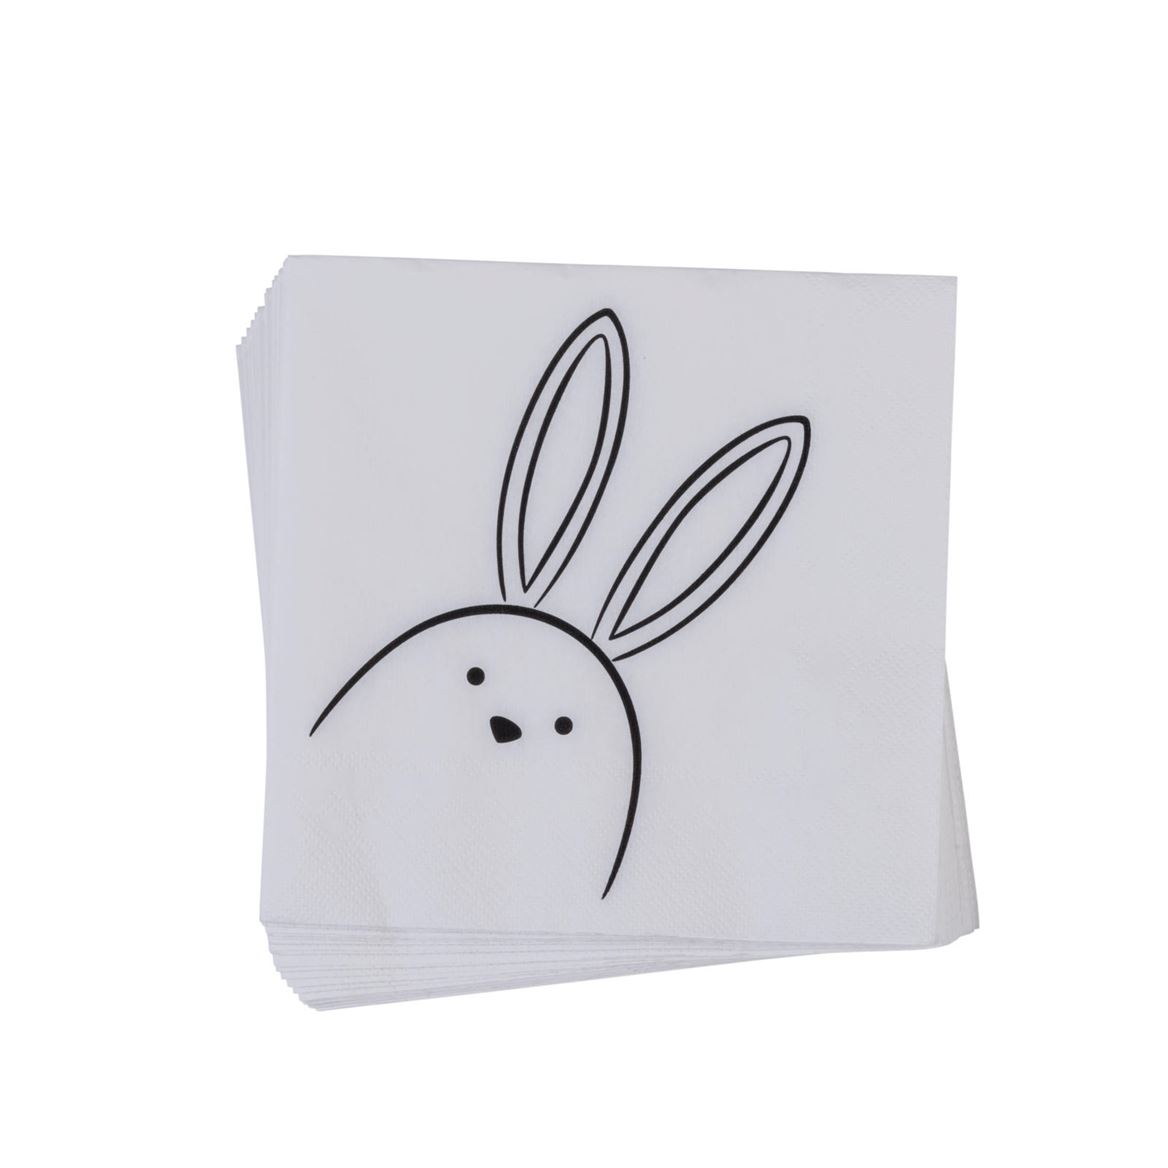 PEEK A BOO Set de 20 serviettes diverses couleurs Larg. 33 x Long. 33 cm_peek-a-boo-set-de-20-serviettes-diverses-couleurs-larg--33-x-long--33-cm